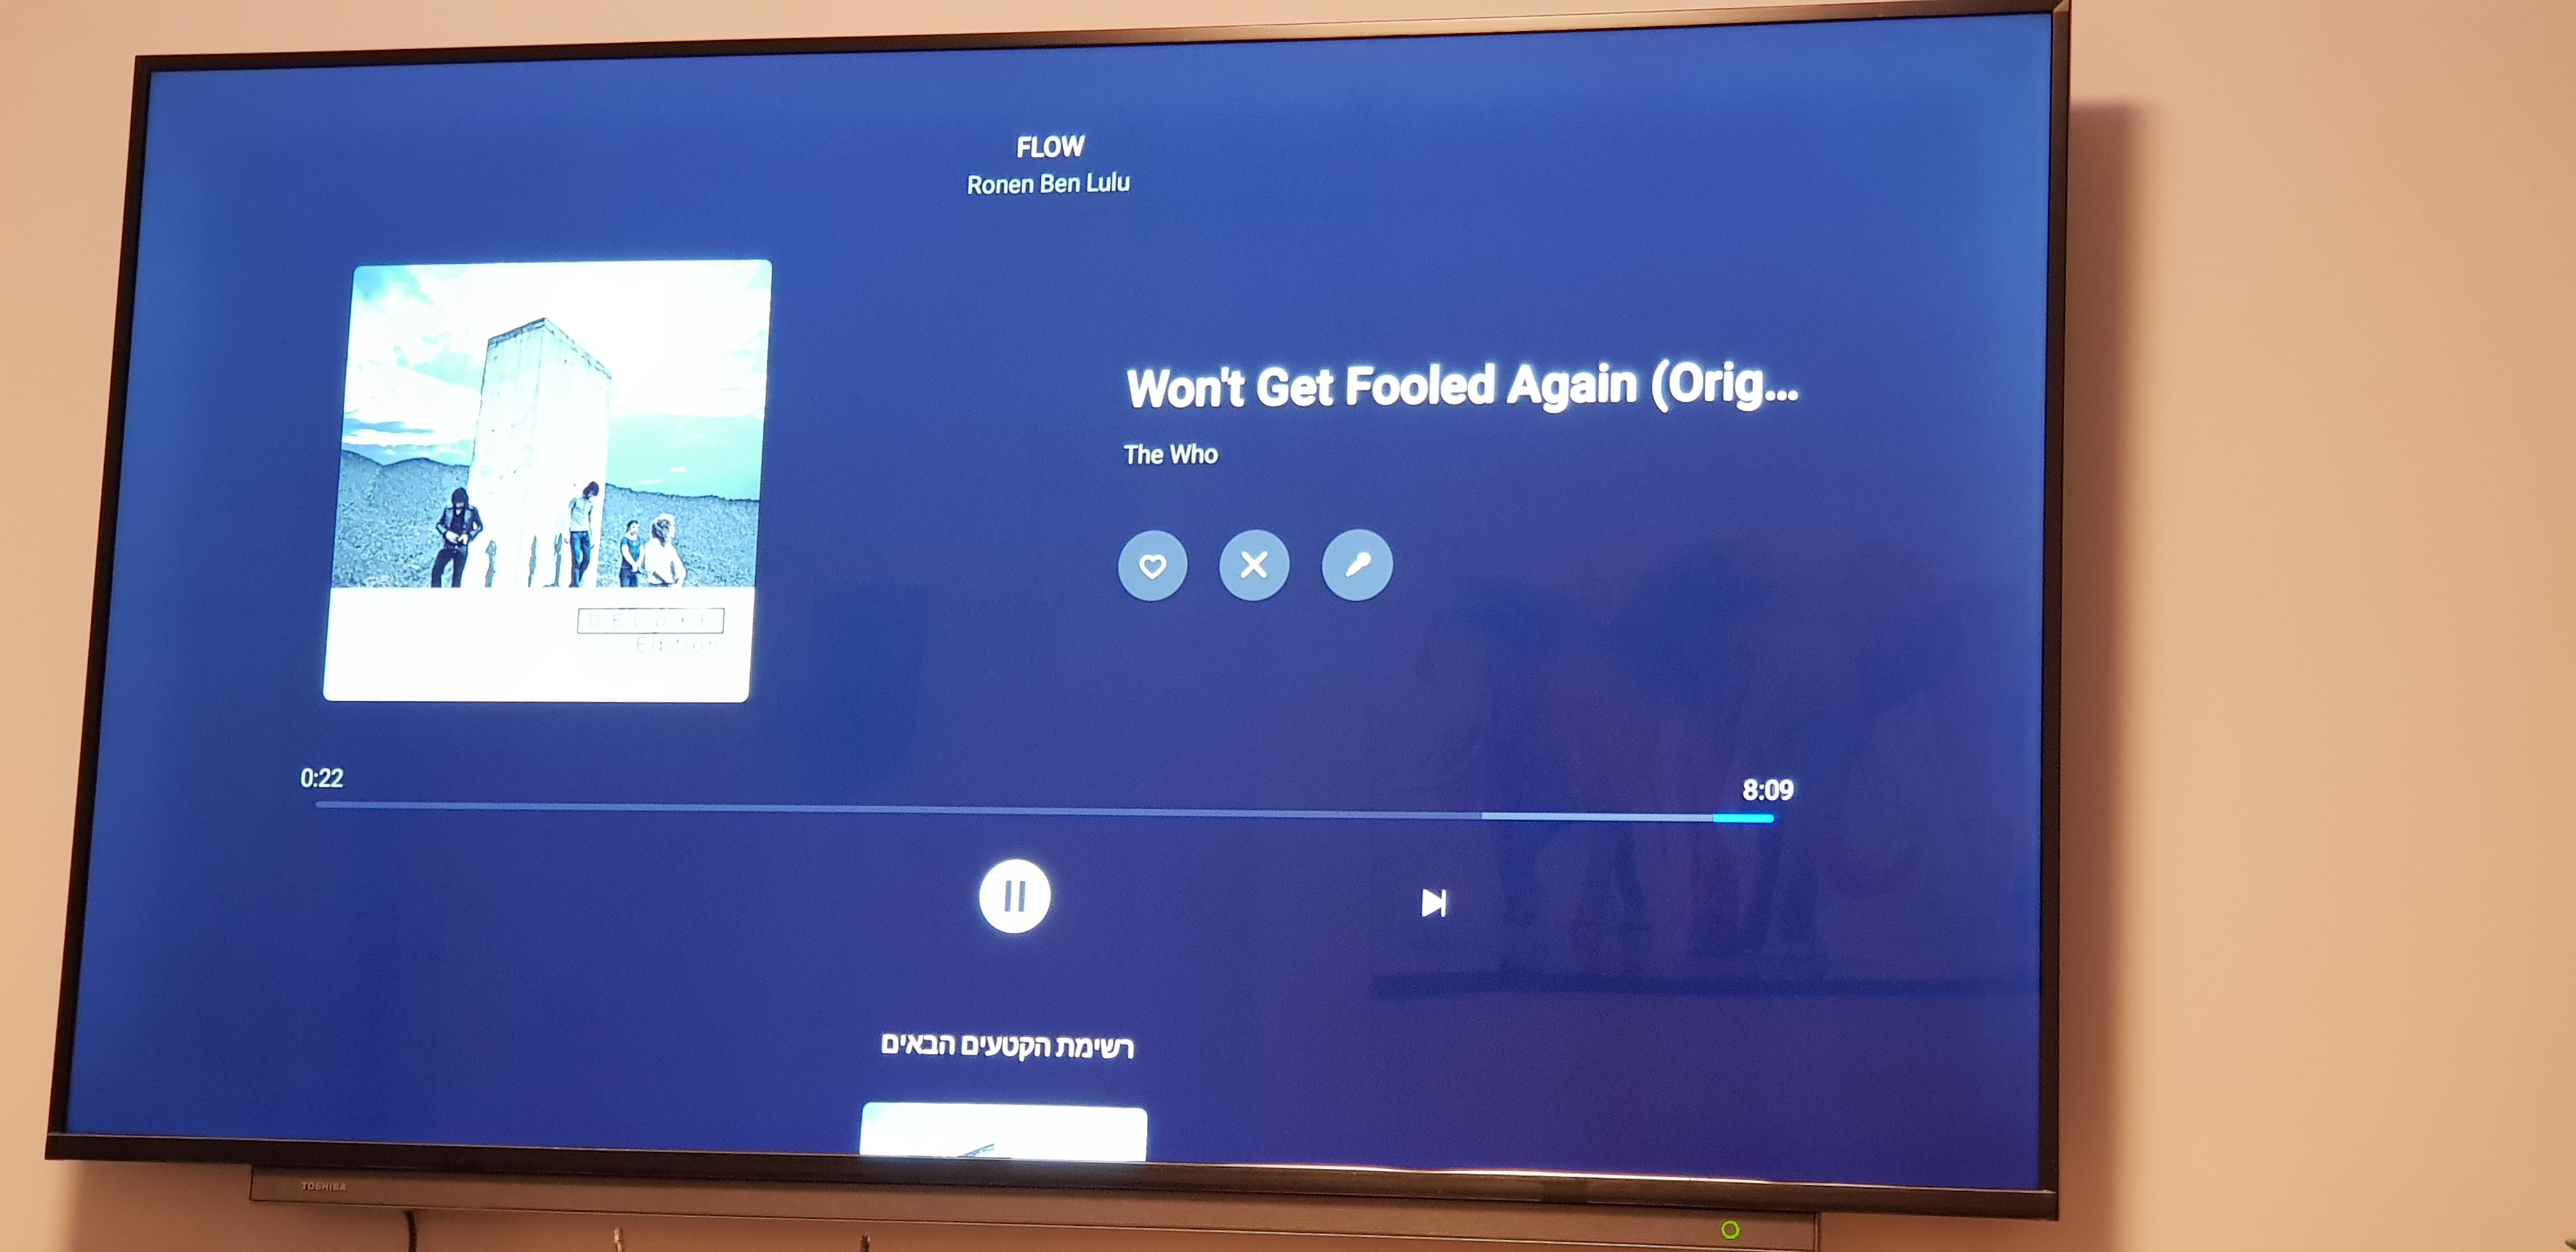 Deezer on androidtv stopped working properly | Deezer